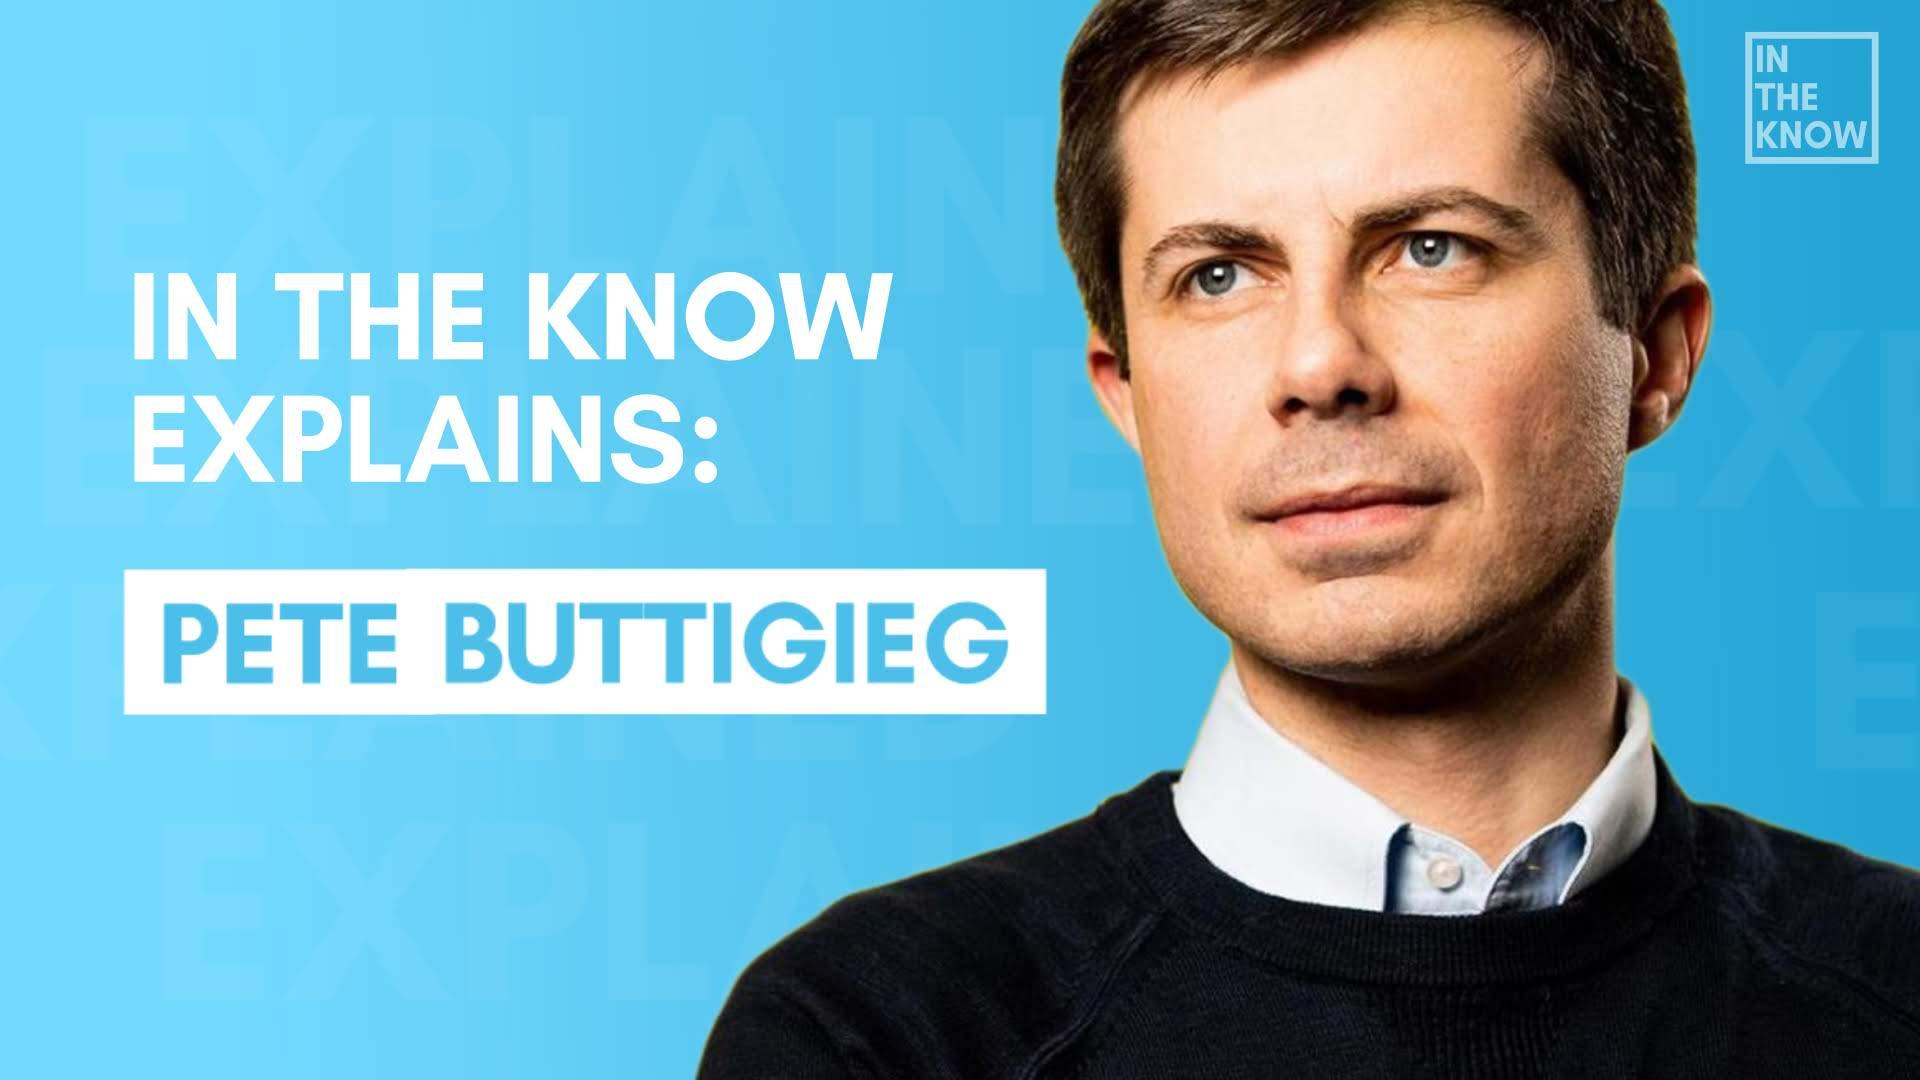 Pete Buttigieg Calls Out Trump Administration's 'Saber-Rattling' With Venezuela and Iran